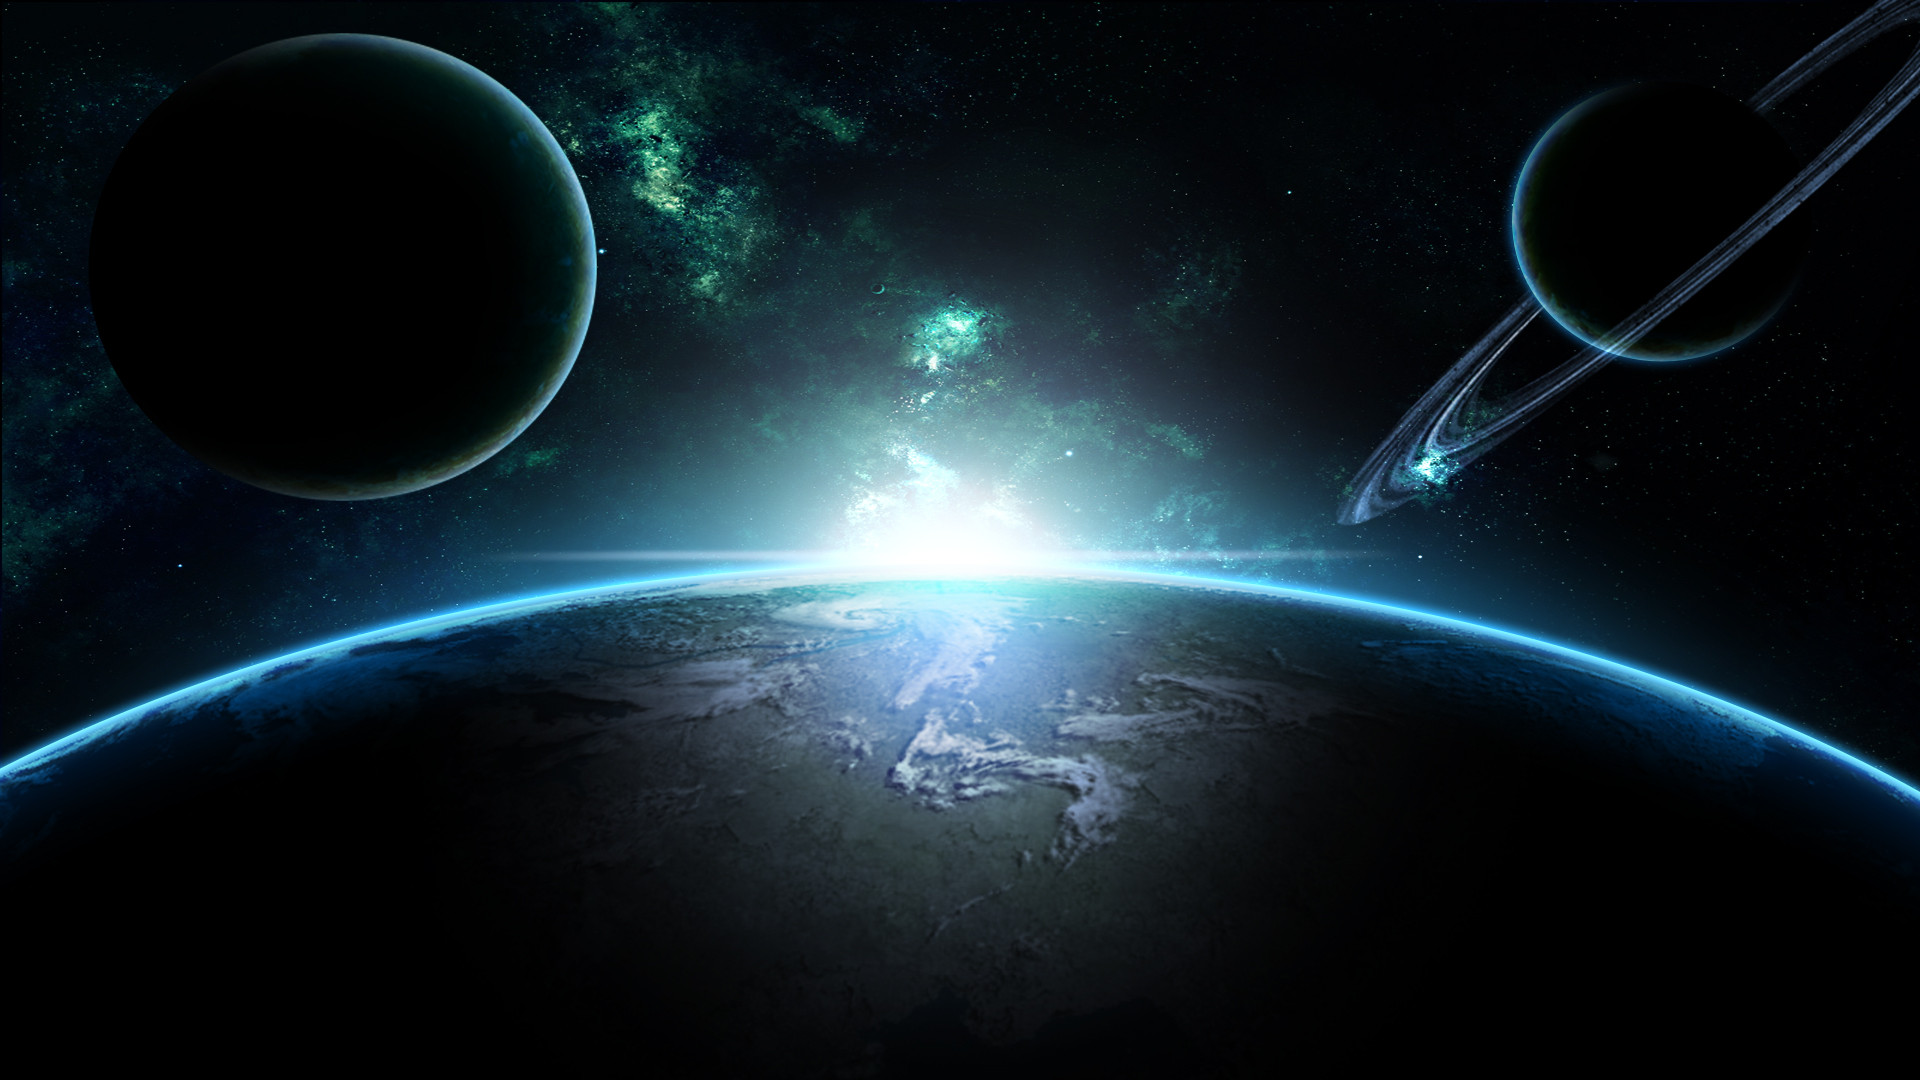 Cool Planet Wallpaper images 1920x1080